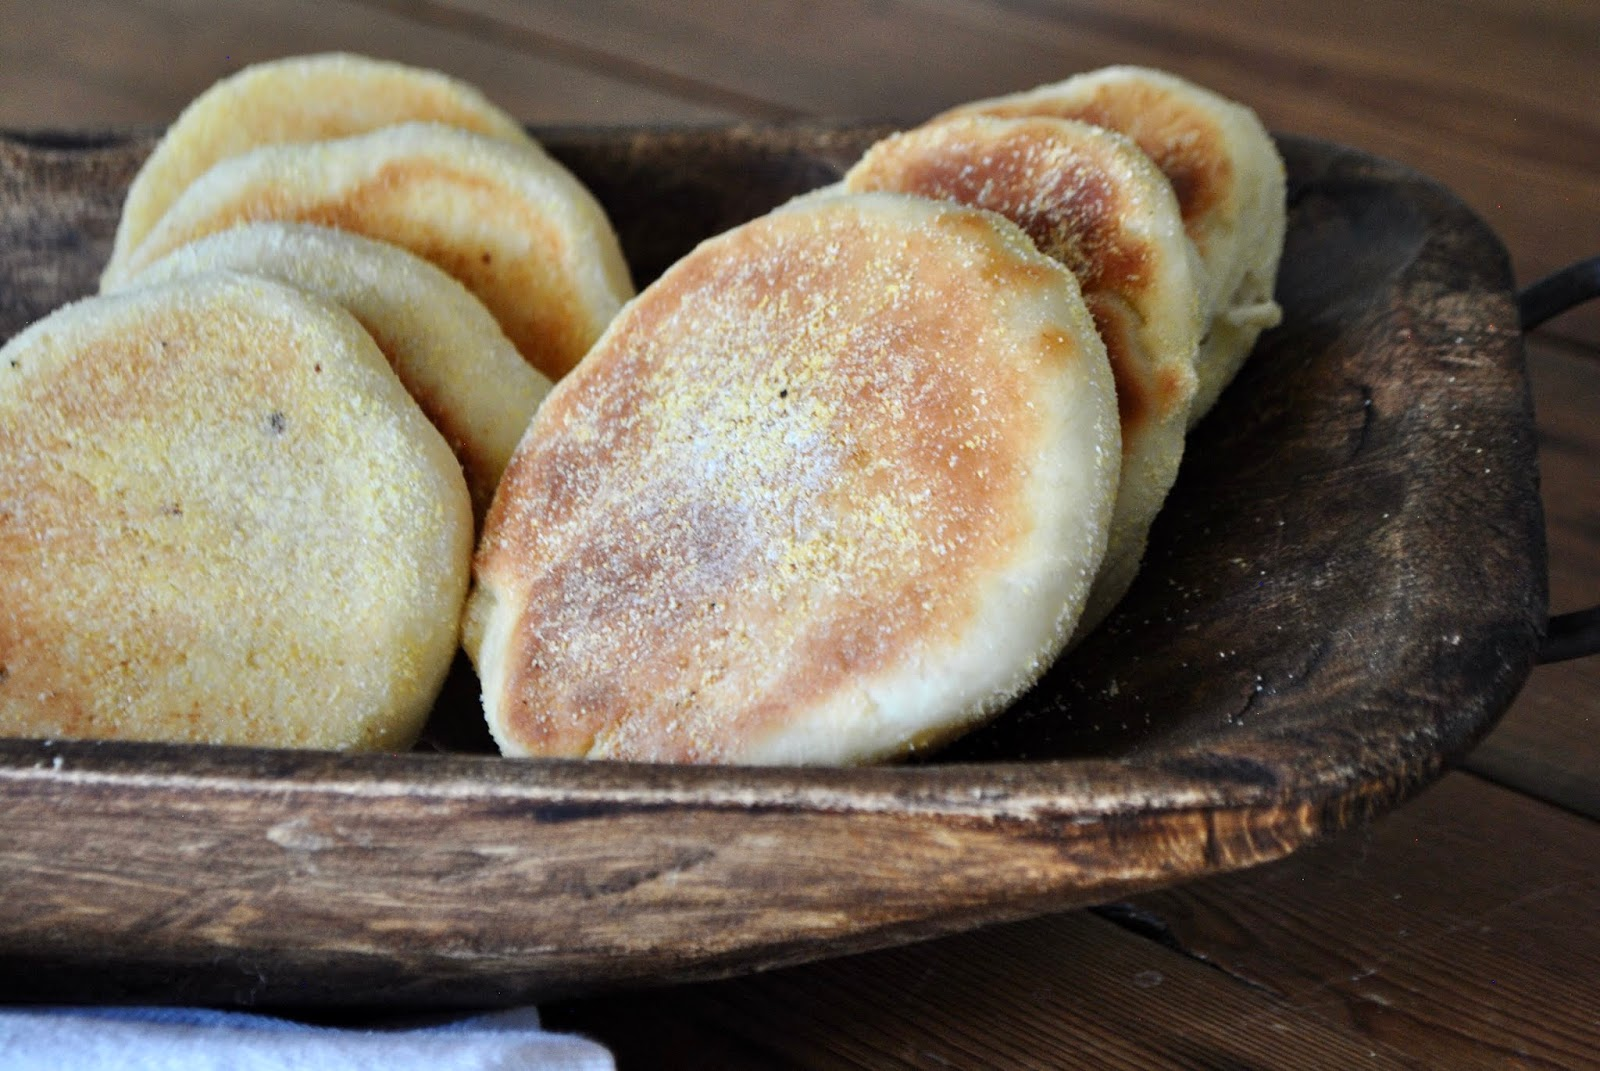 Homemade soft and fluffy English muffins perfect for breakfast and brunch.